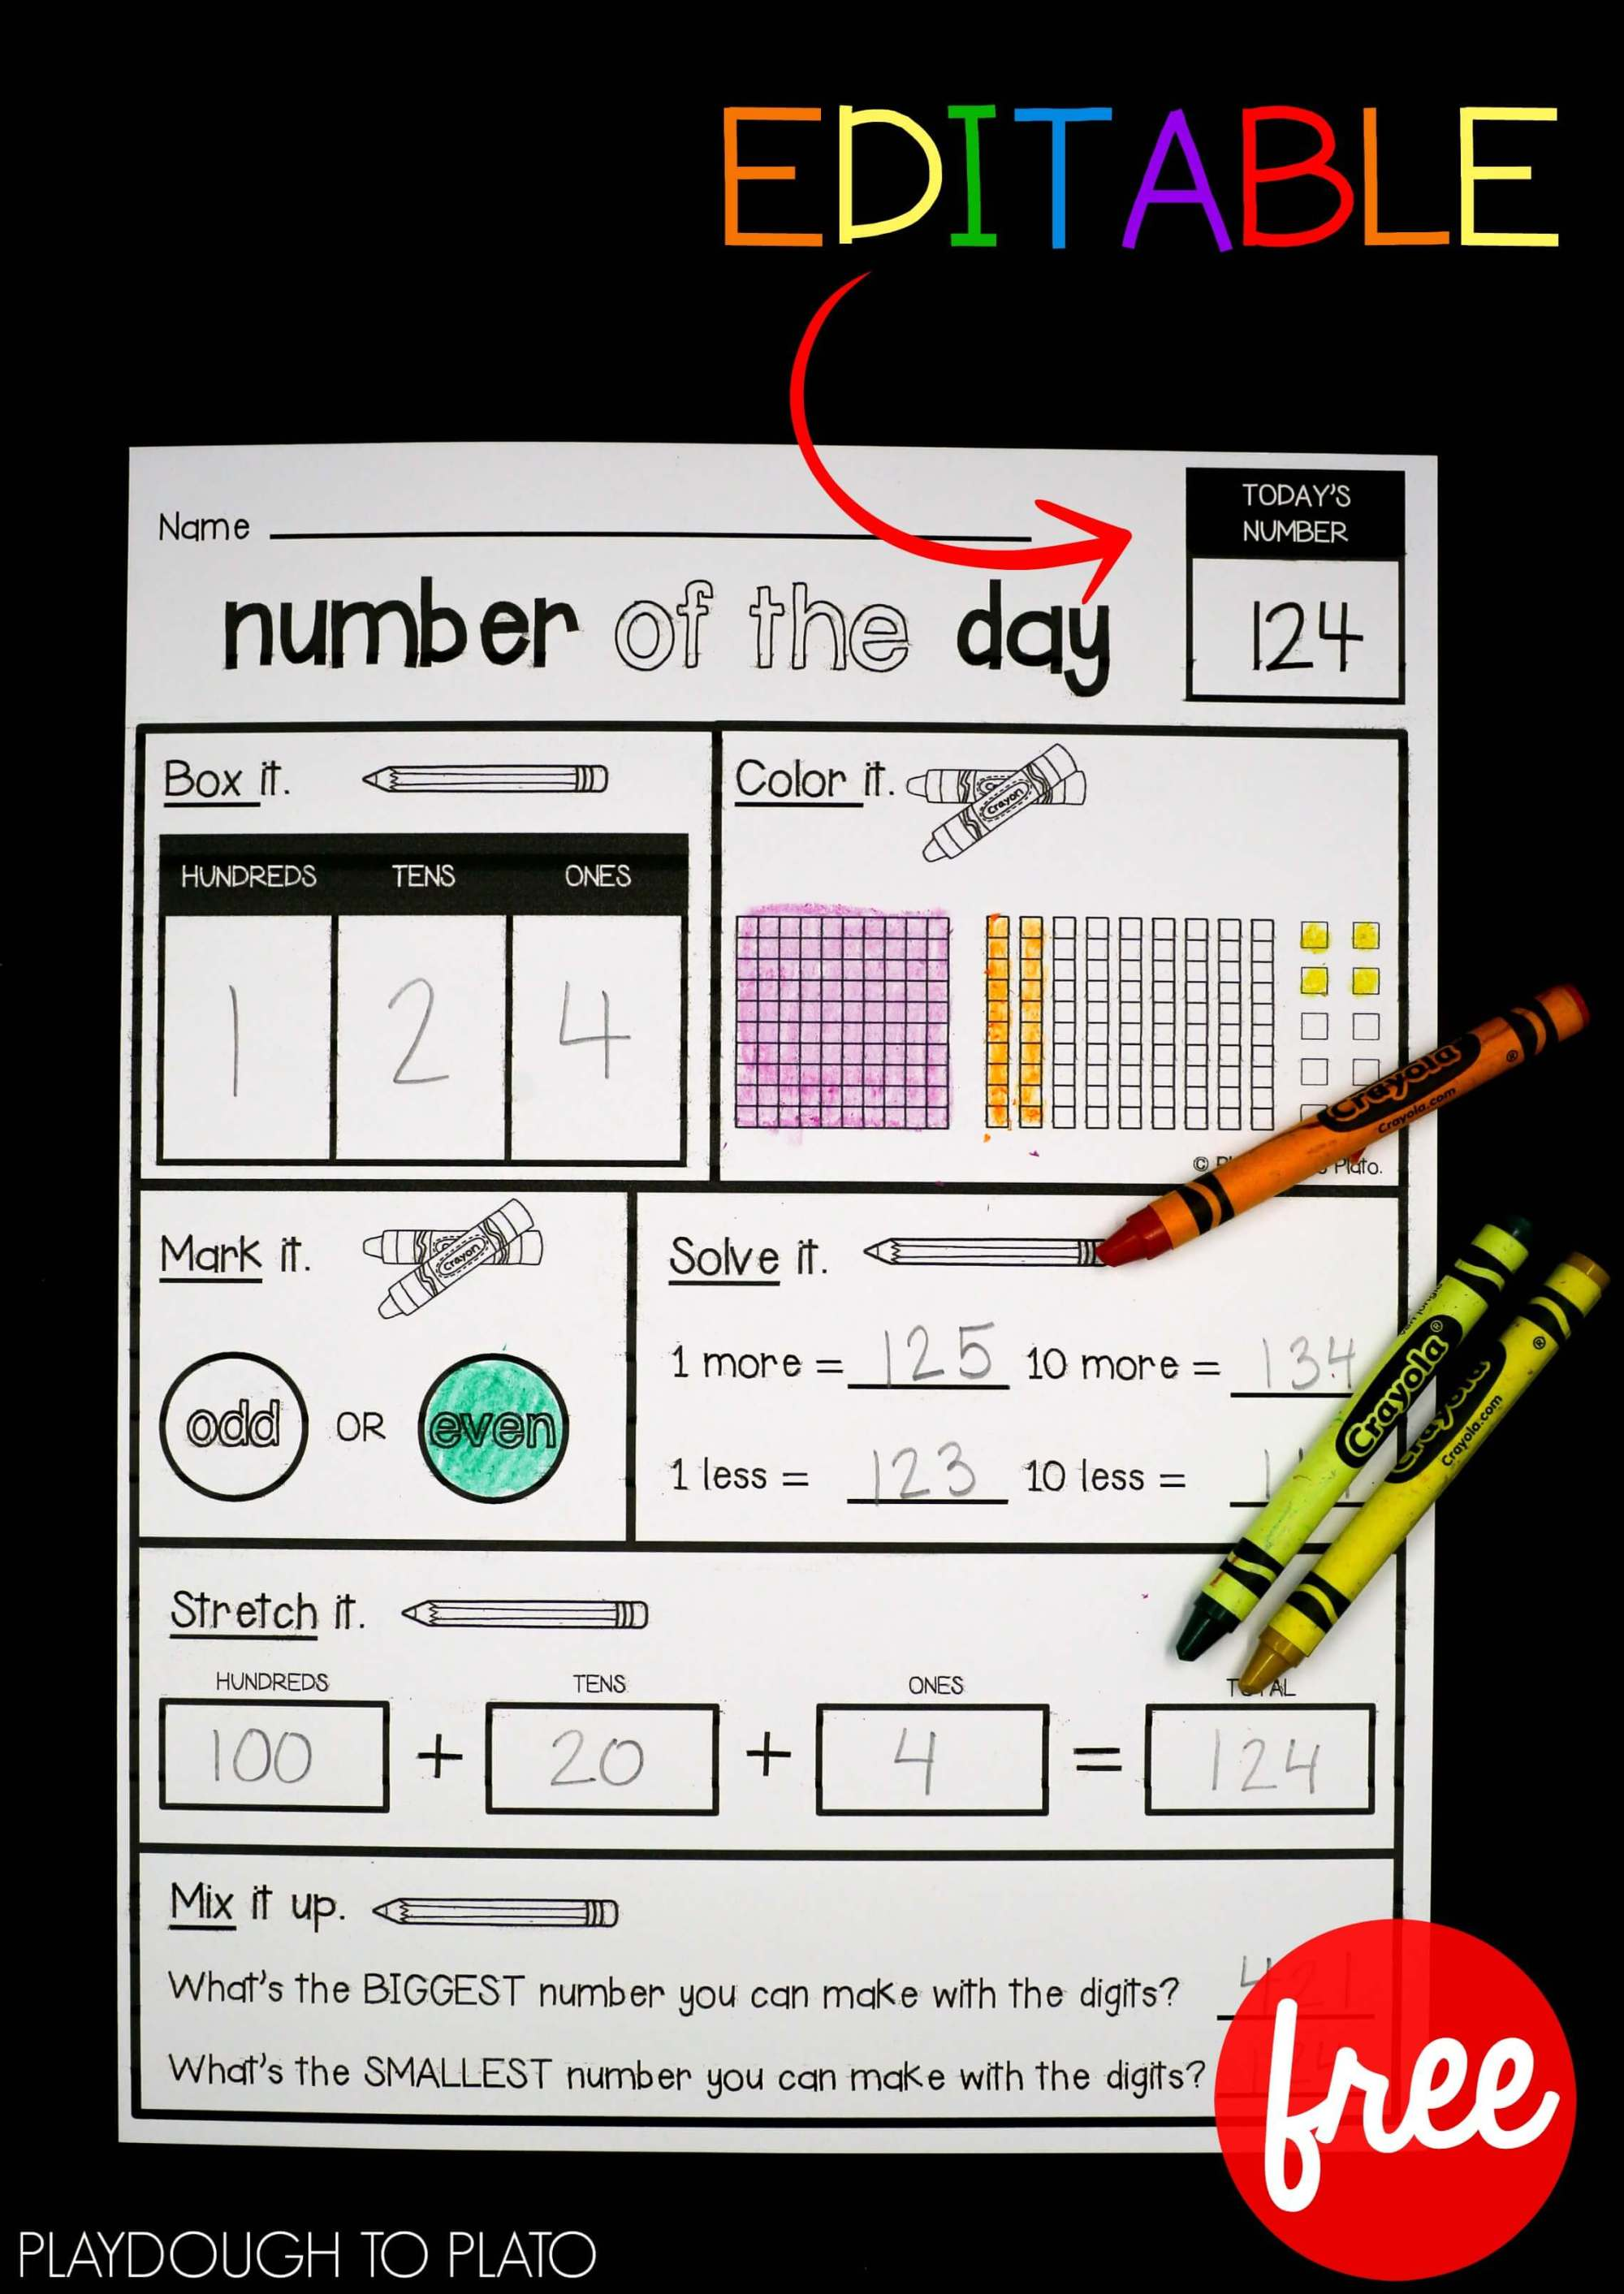 hight resolution of EDITABLE Number of the Day Sheet - Playdough To Plato